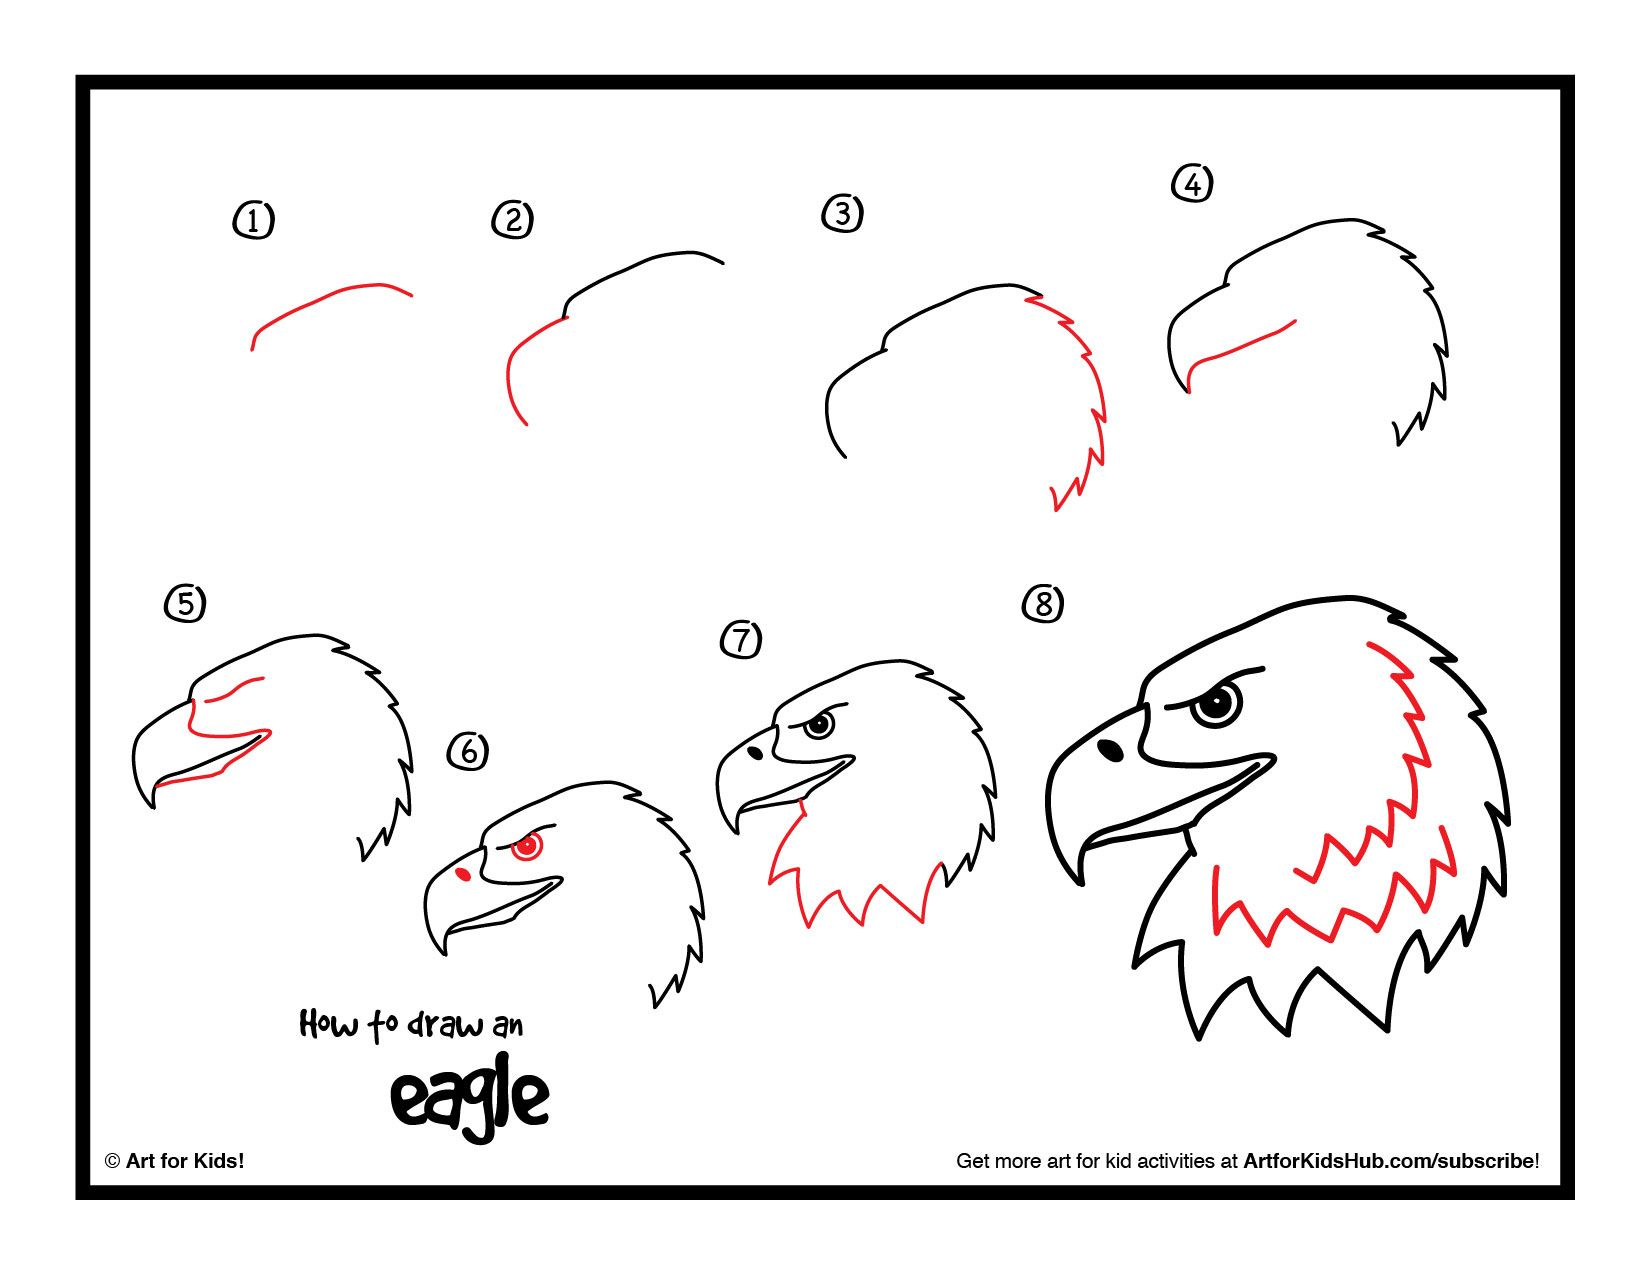 Guided Drawing Eagle Kids  Click The How To Draw An Eagle Image